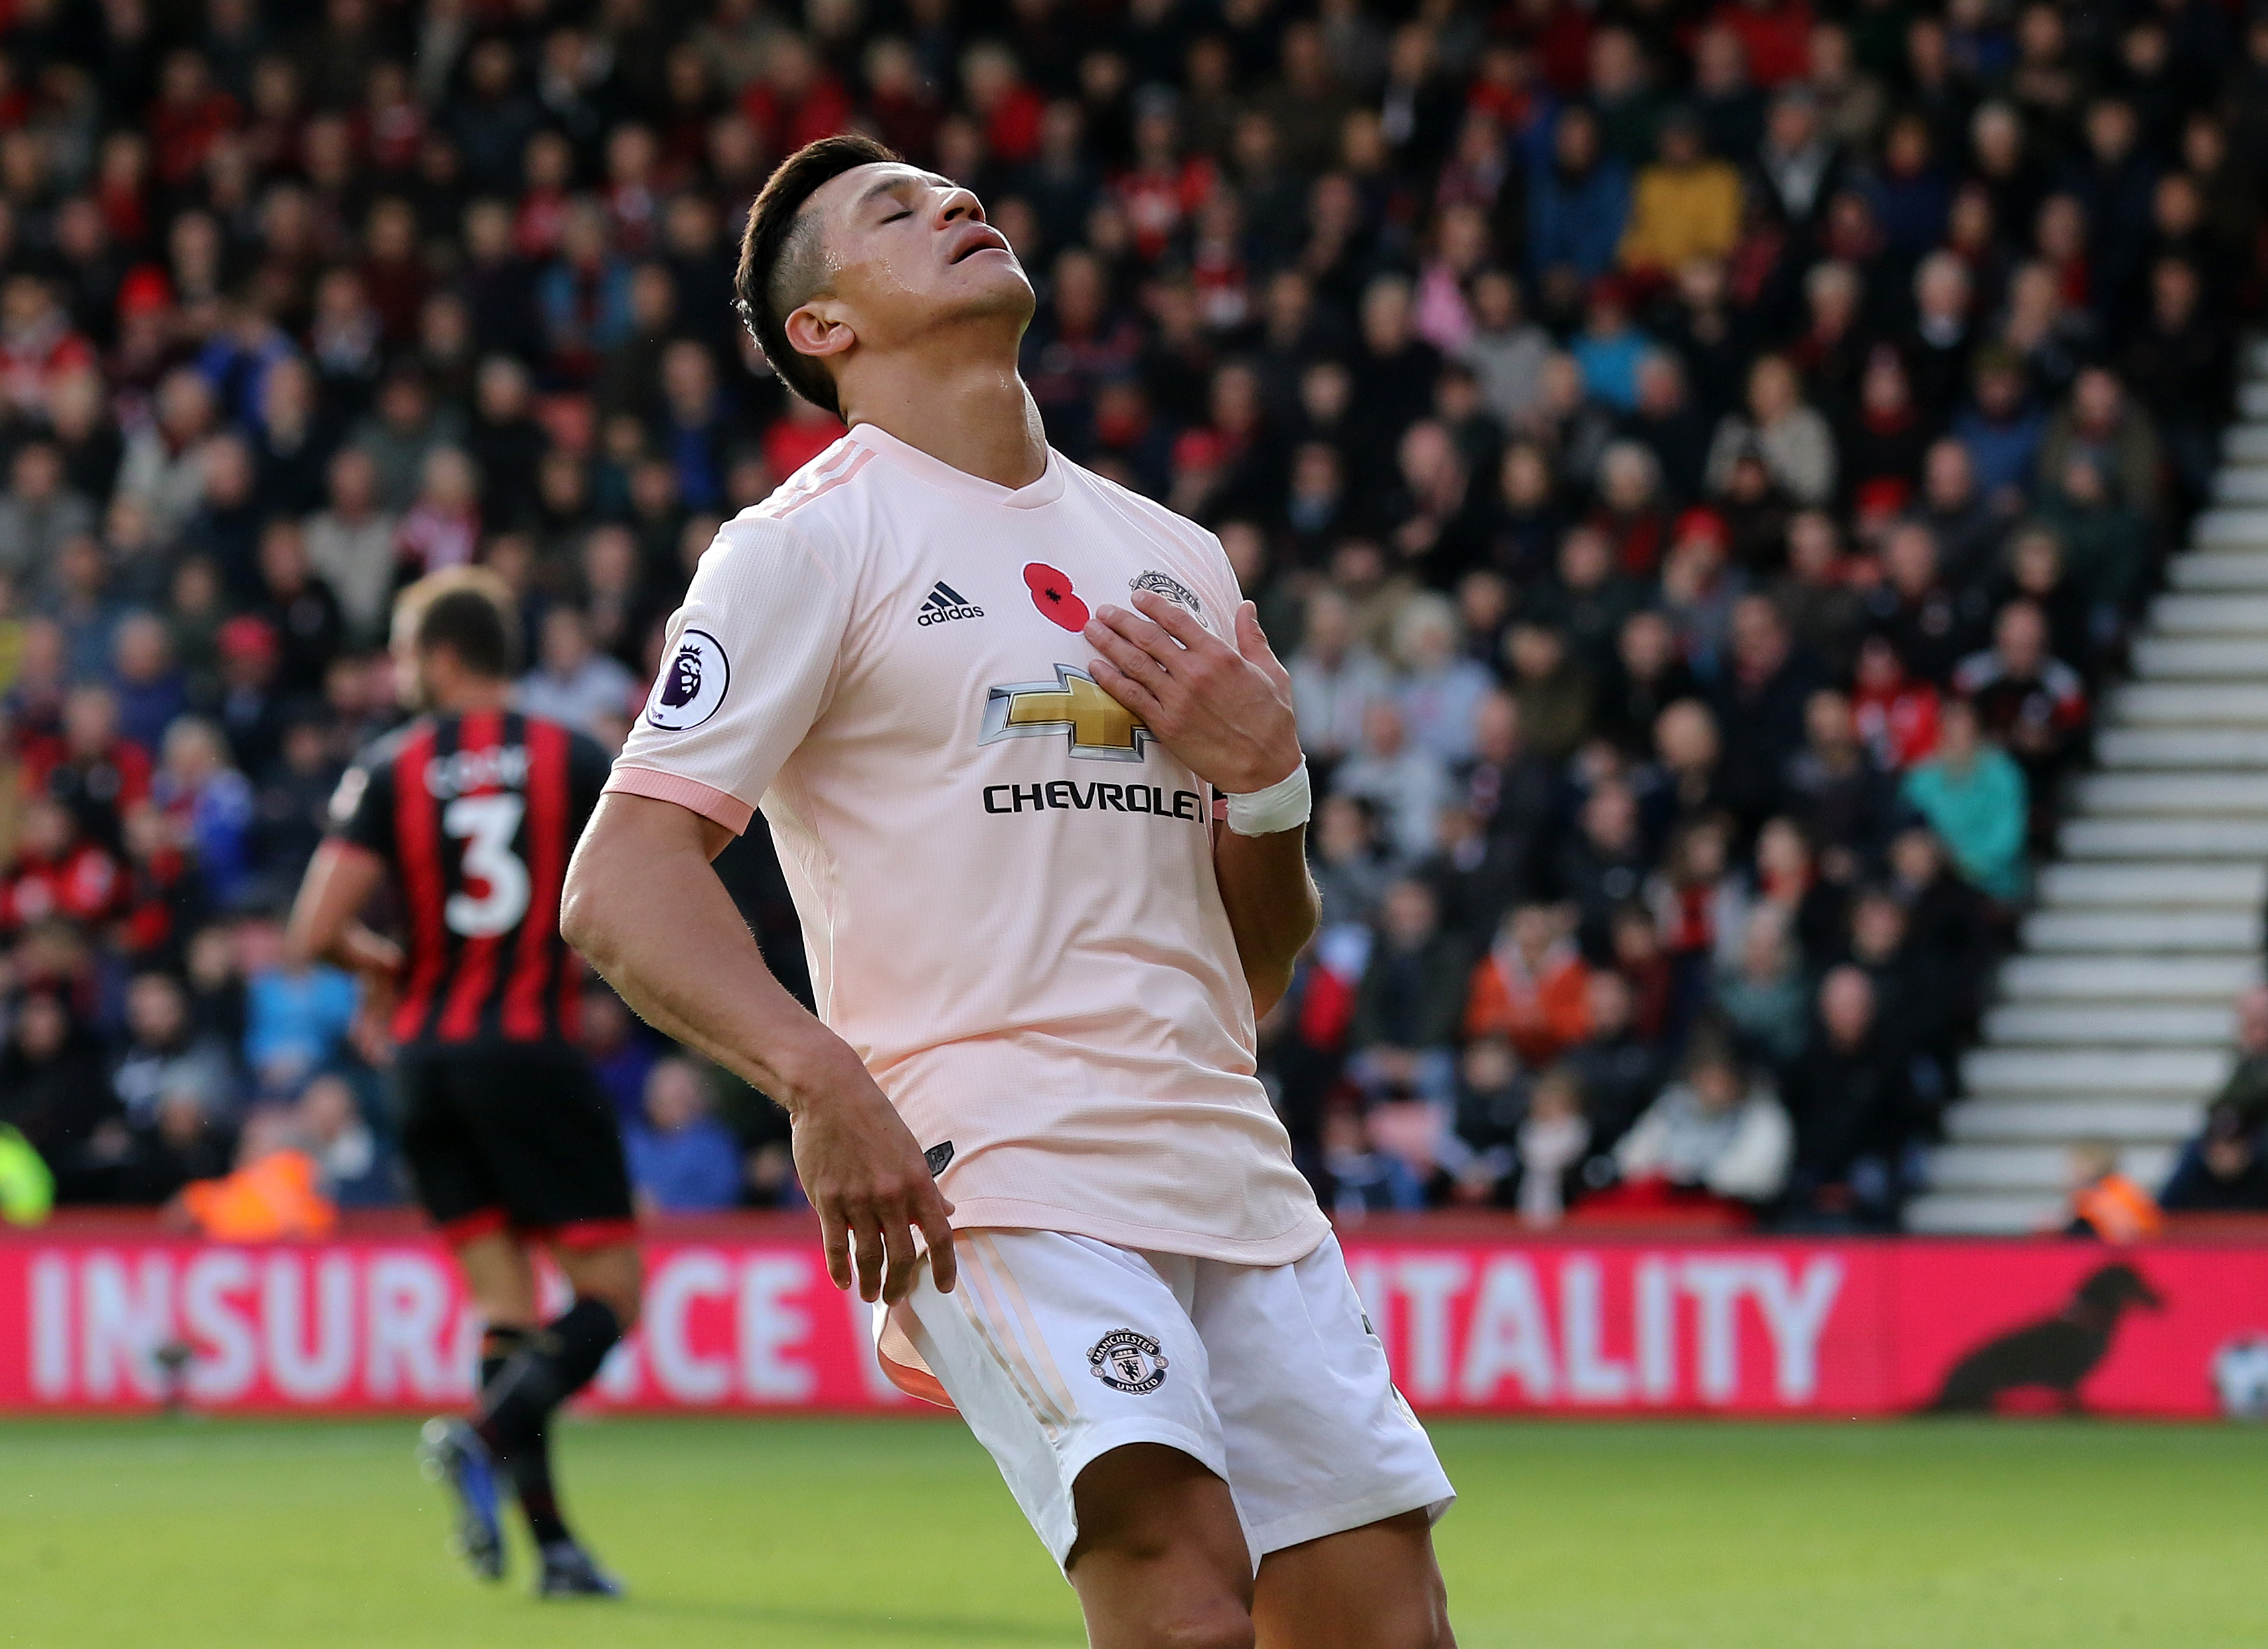 Sanchez has been poor for United. Image: PA Images